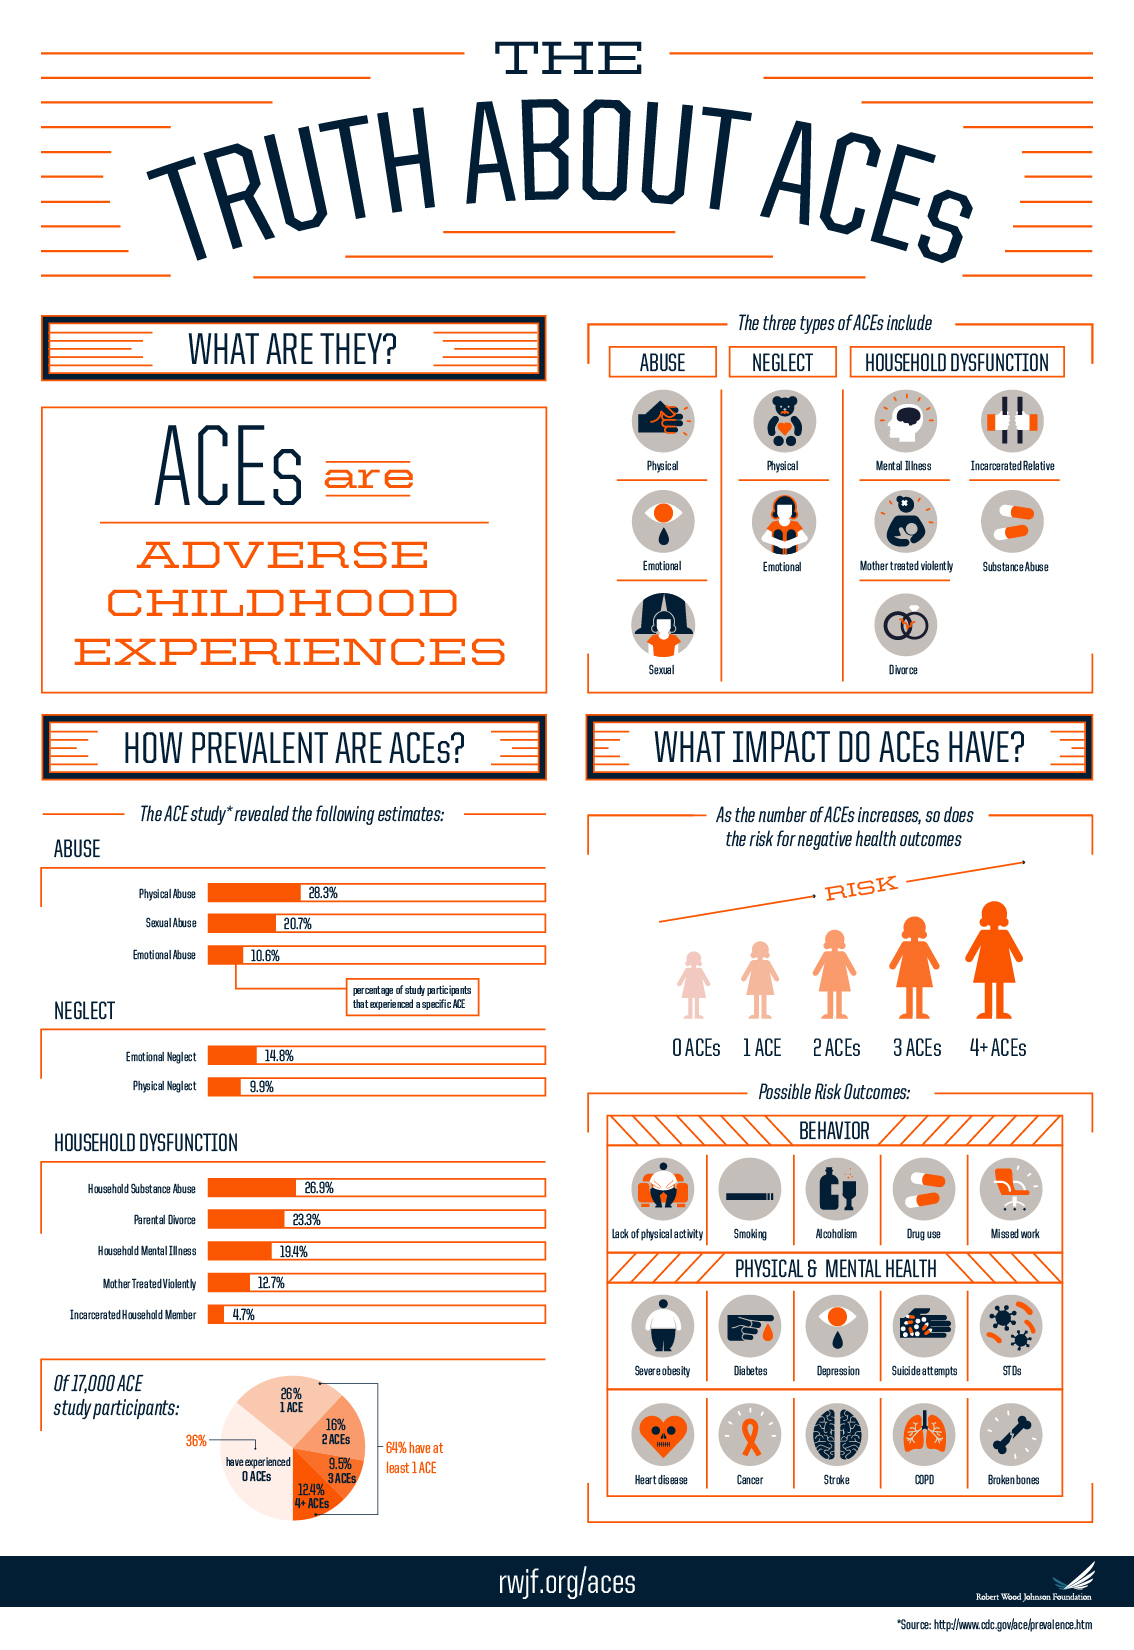 ACEs_infographic_web_2015.4.5_v2.jpg